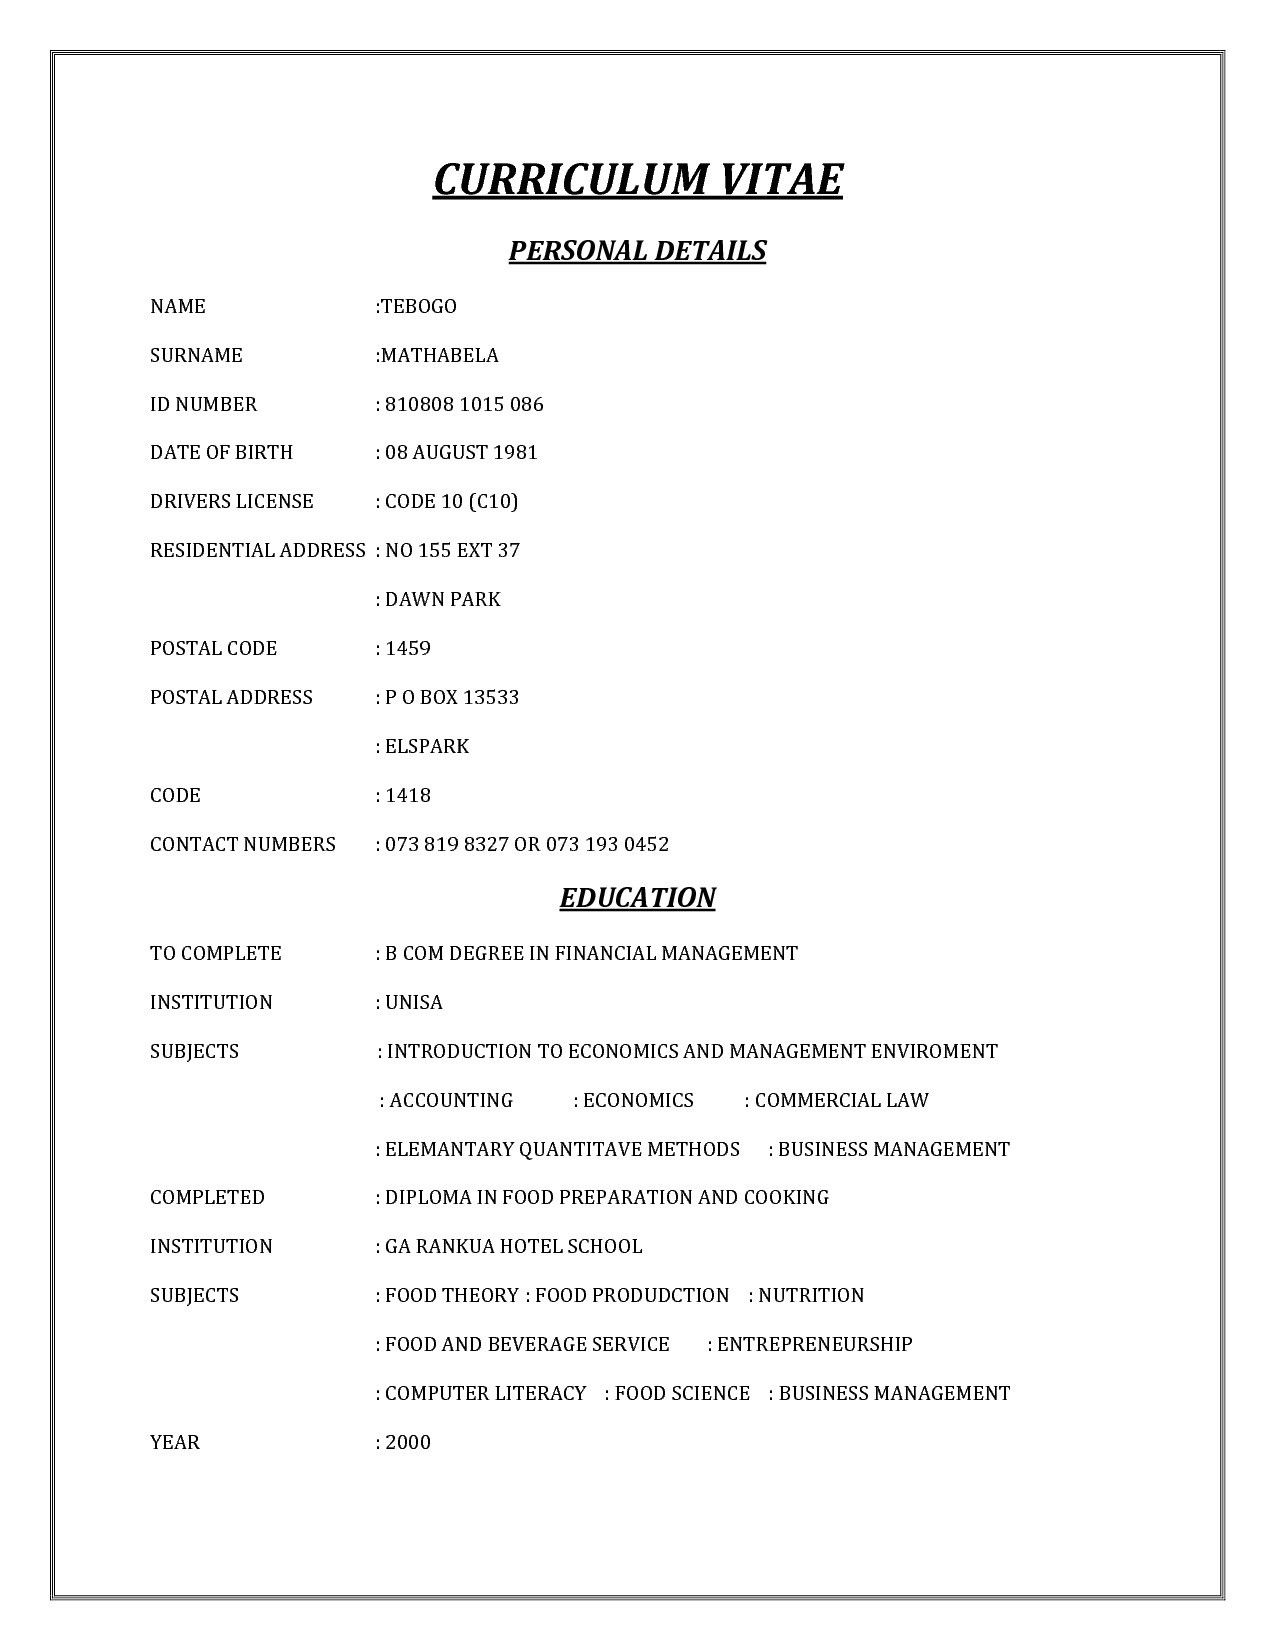 Cv Template Za (With images) Cv template, Curriculum